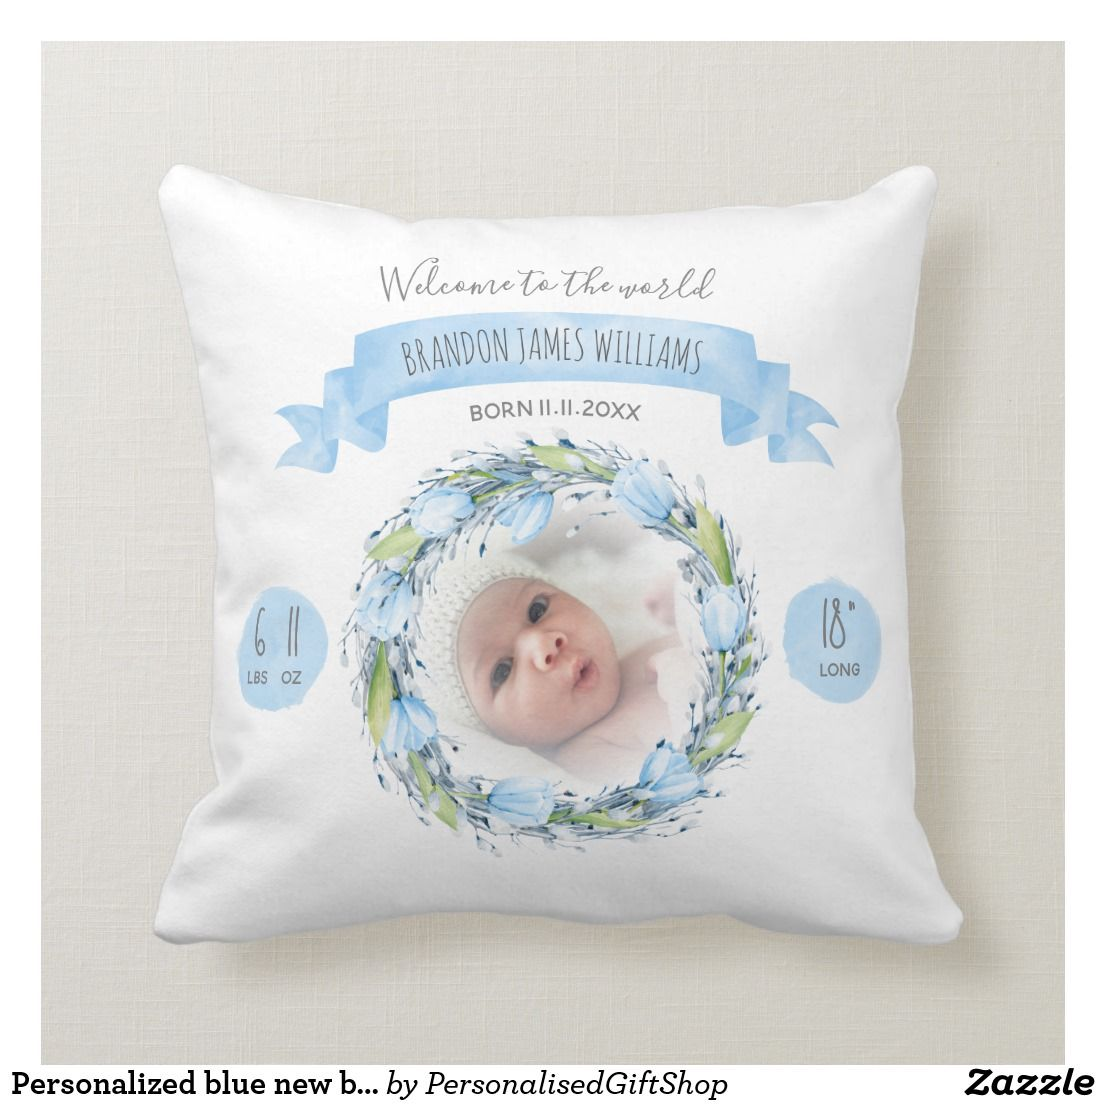 Personalized blue new baby throw pillow